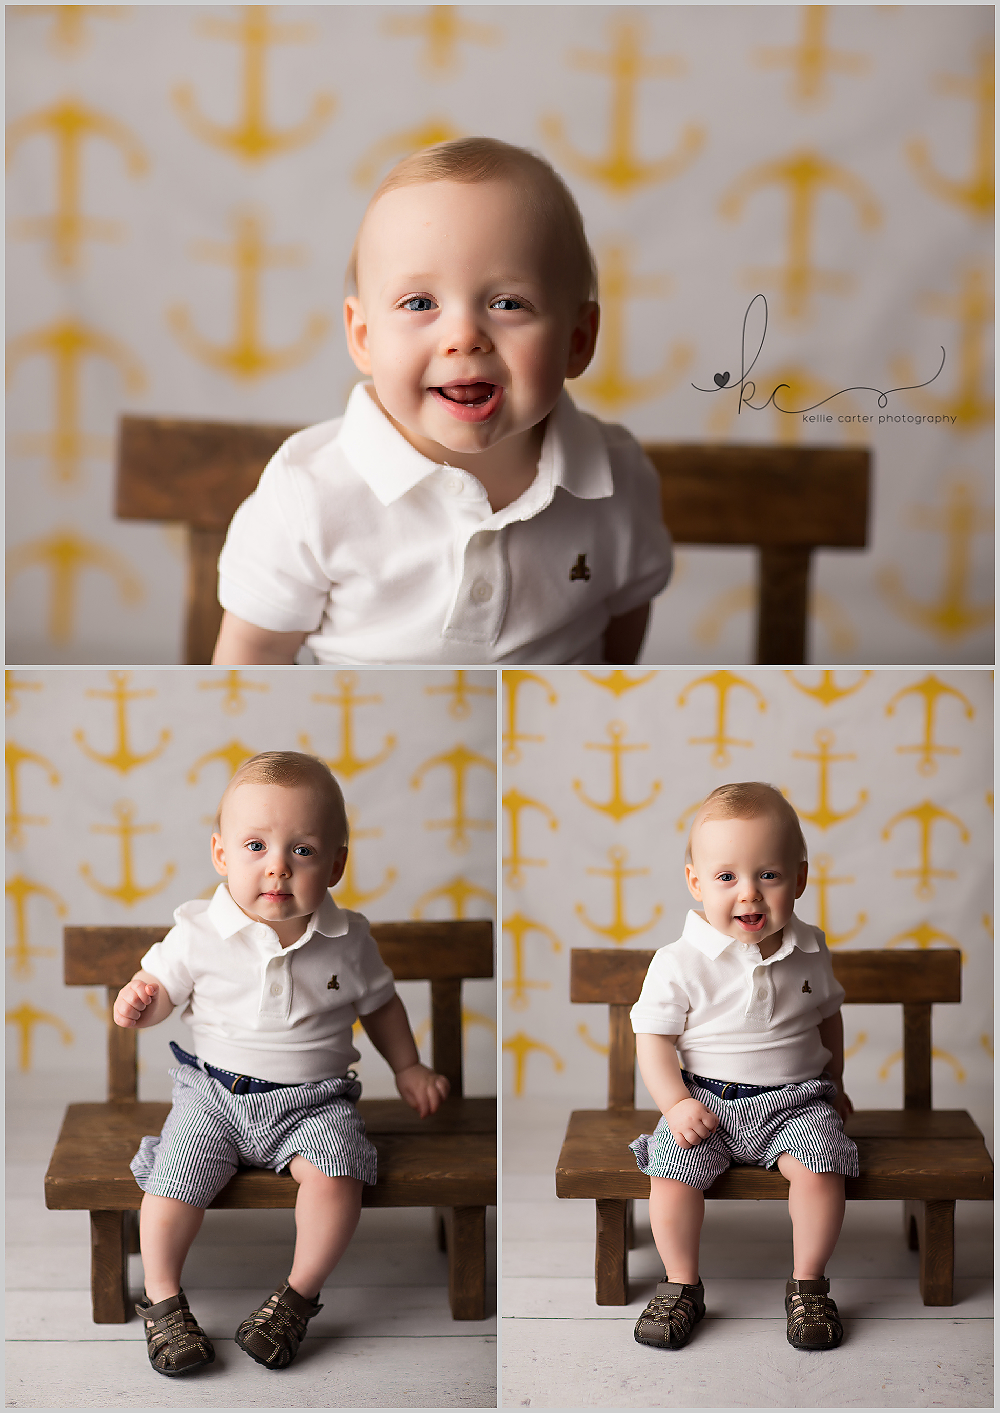 KellieCarter3 Happy 1st Birthday Brady {Russell Springs Childrens Photographer}